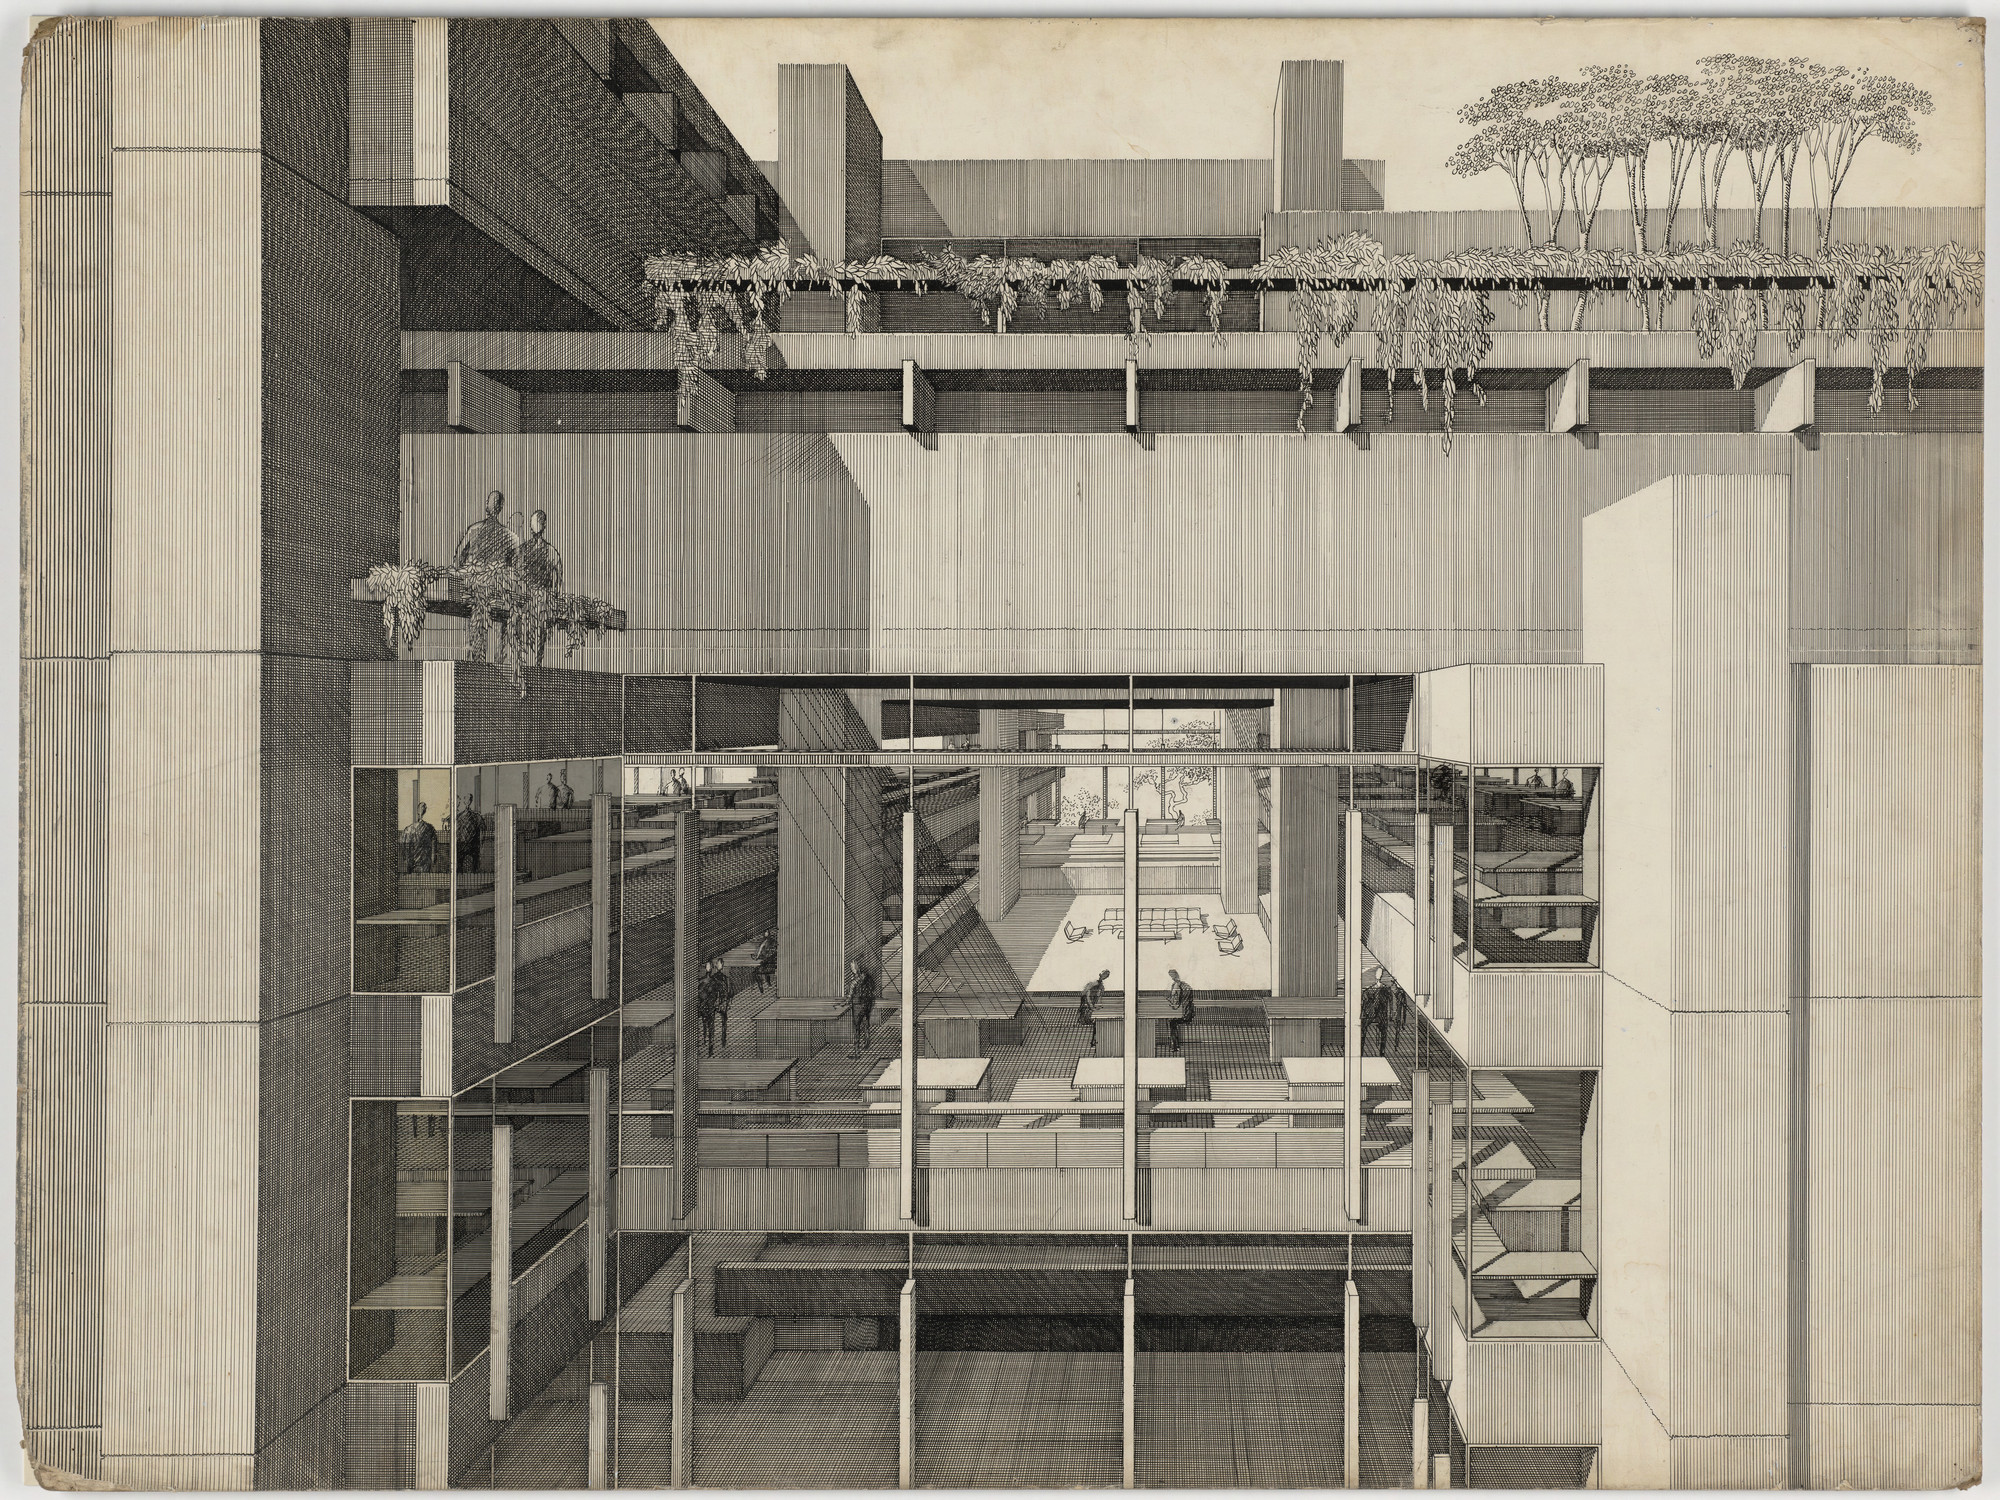 Paul rudolph art and architecture building yale university new haven connecticut partial exterior perspective 1958